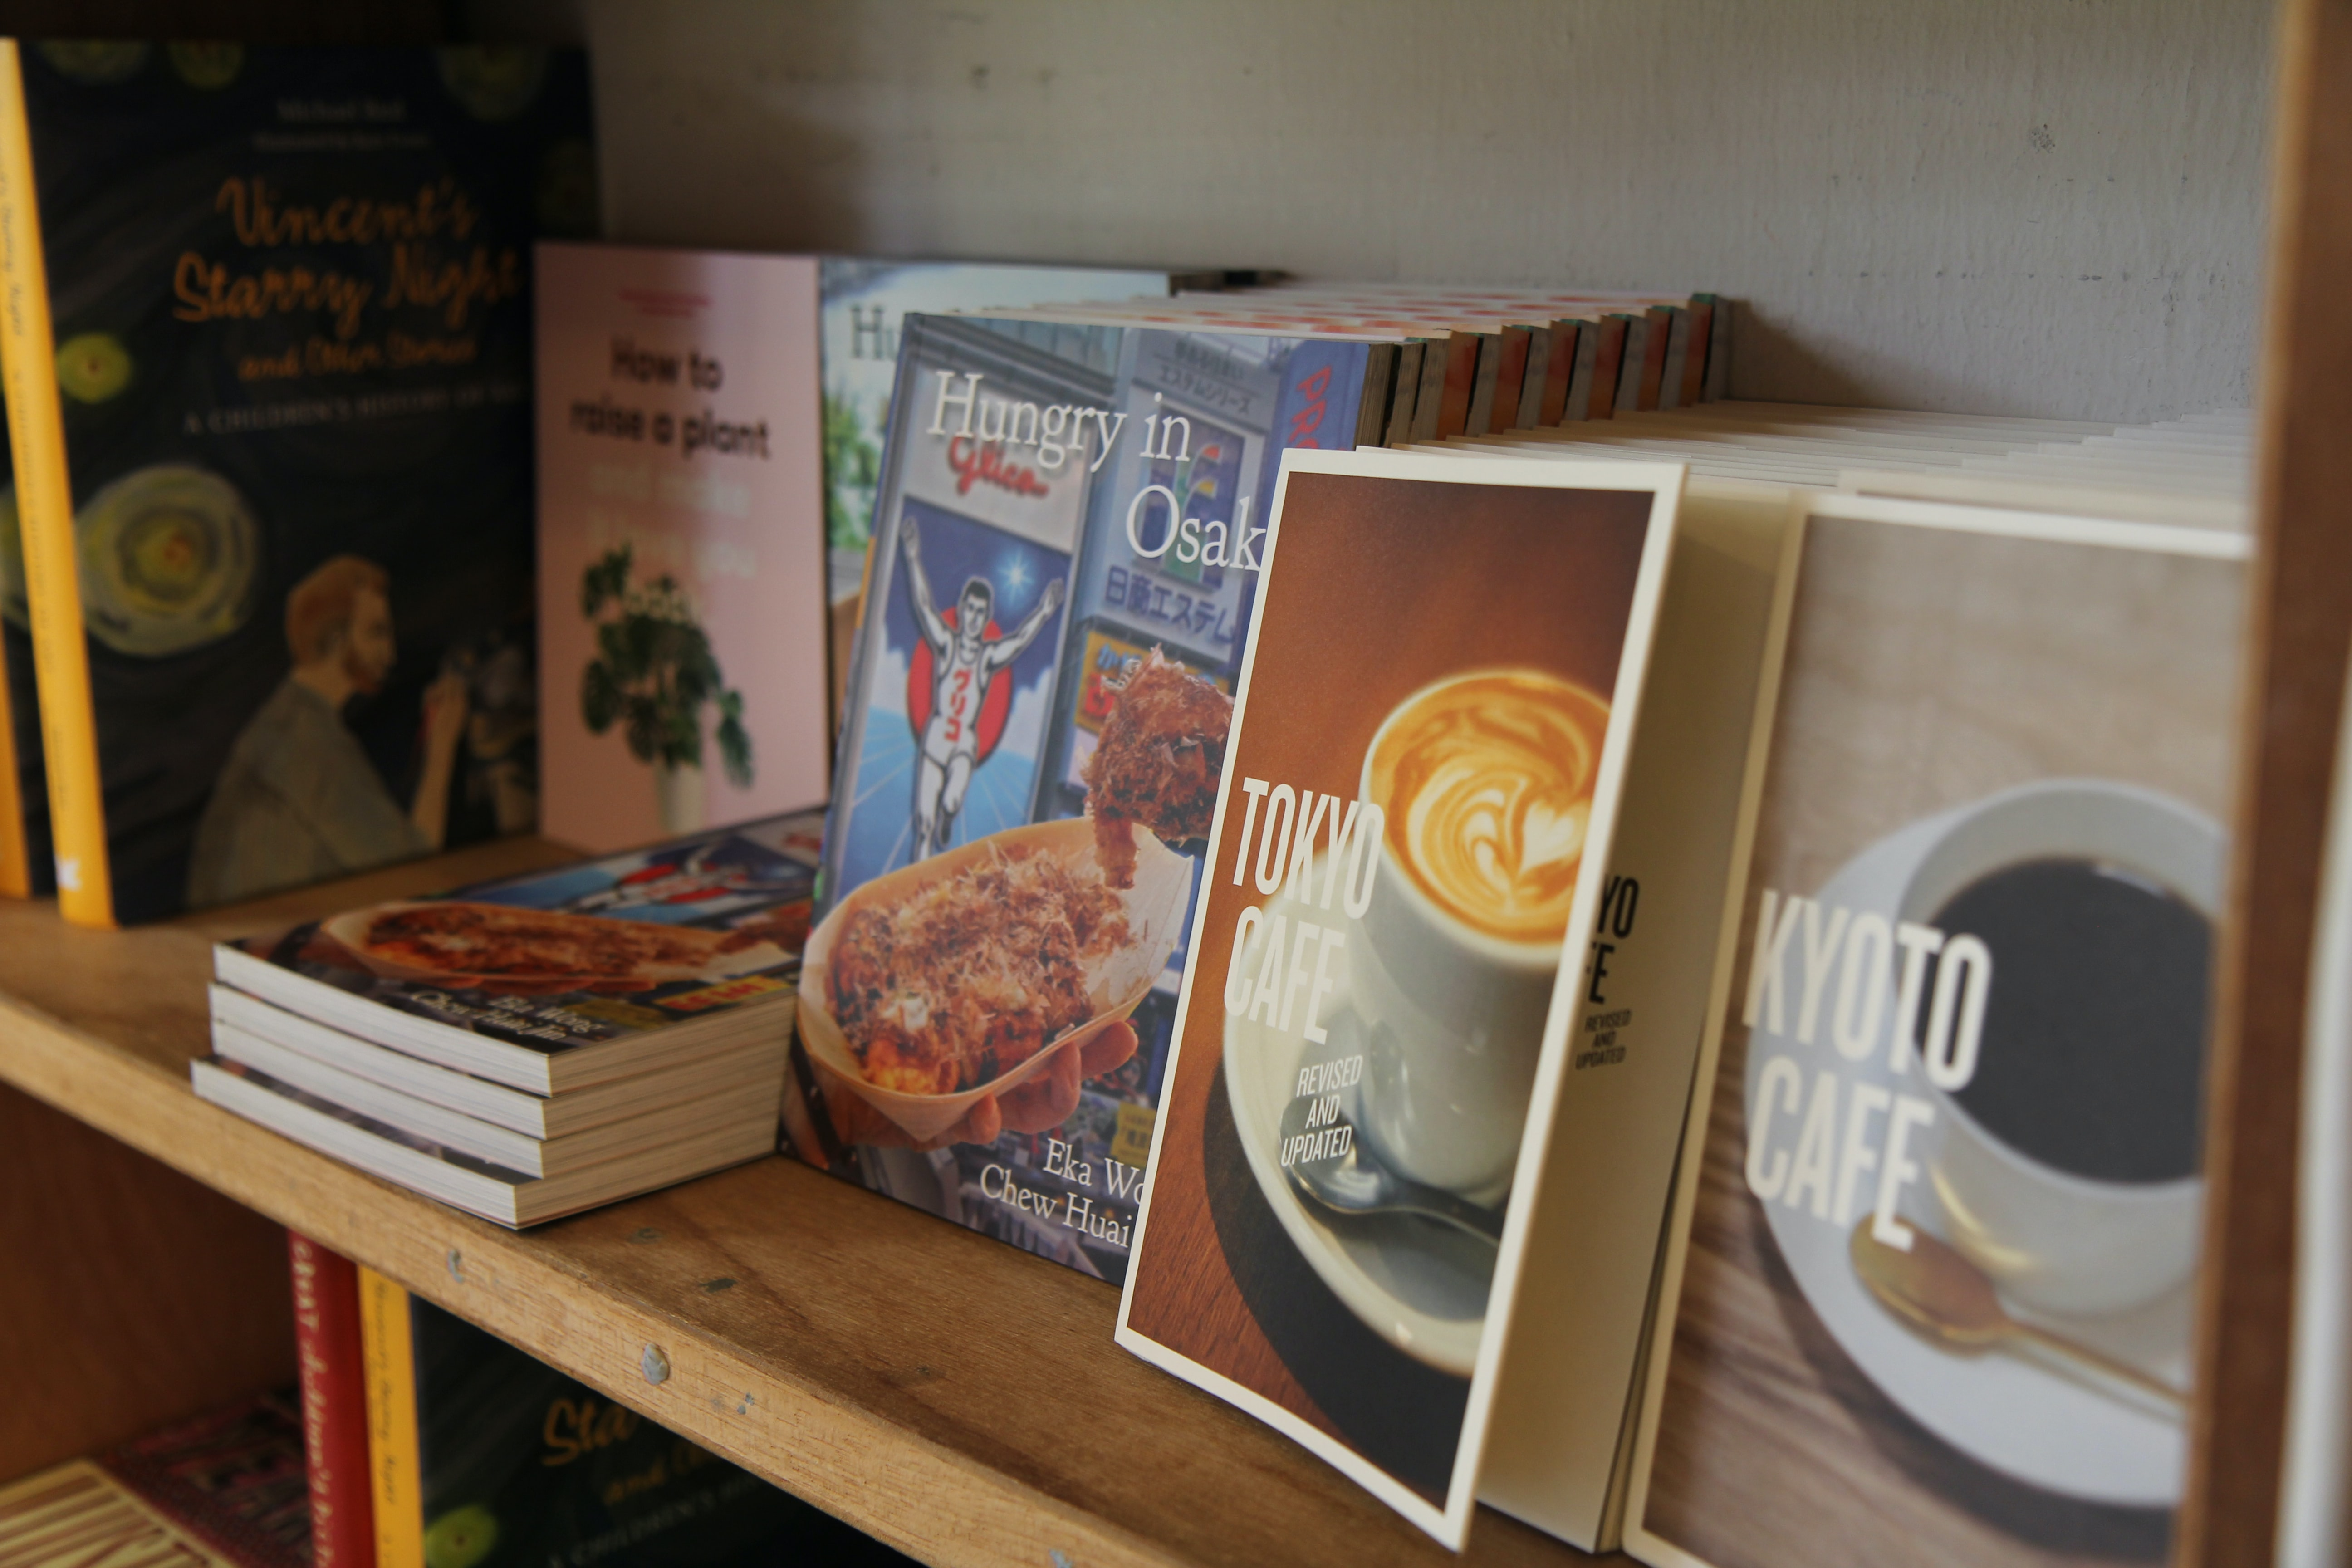 assorted book lot on brown wooden shelf